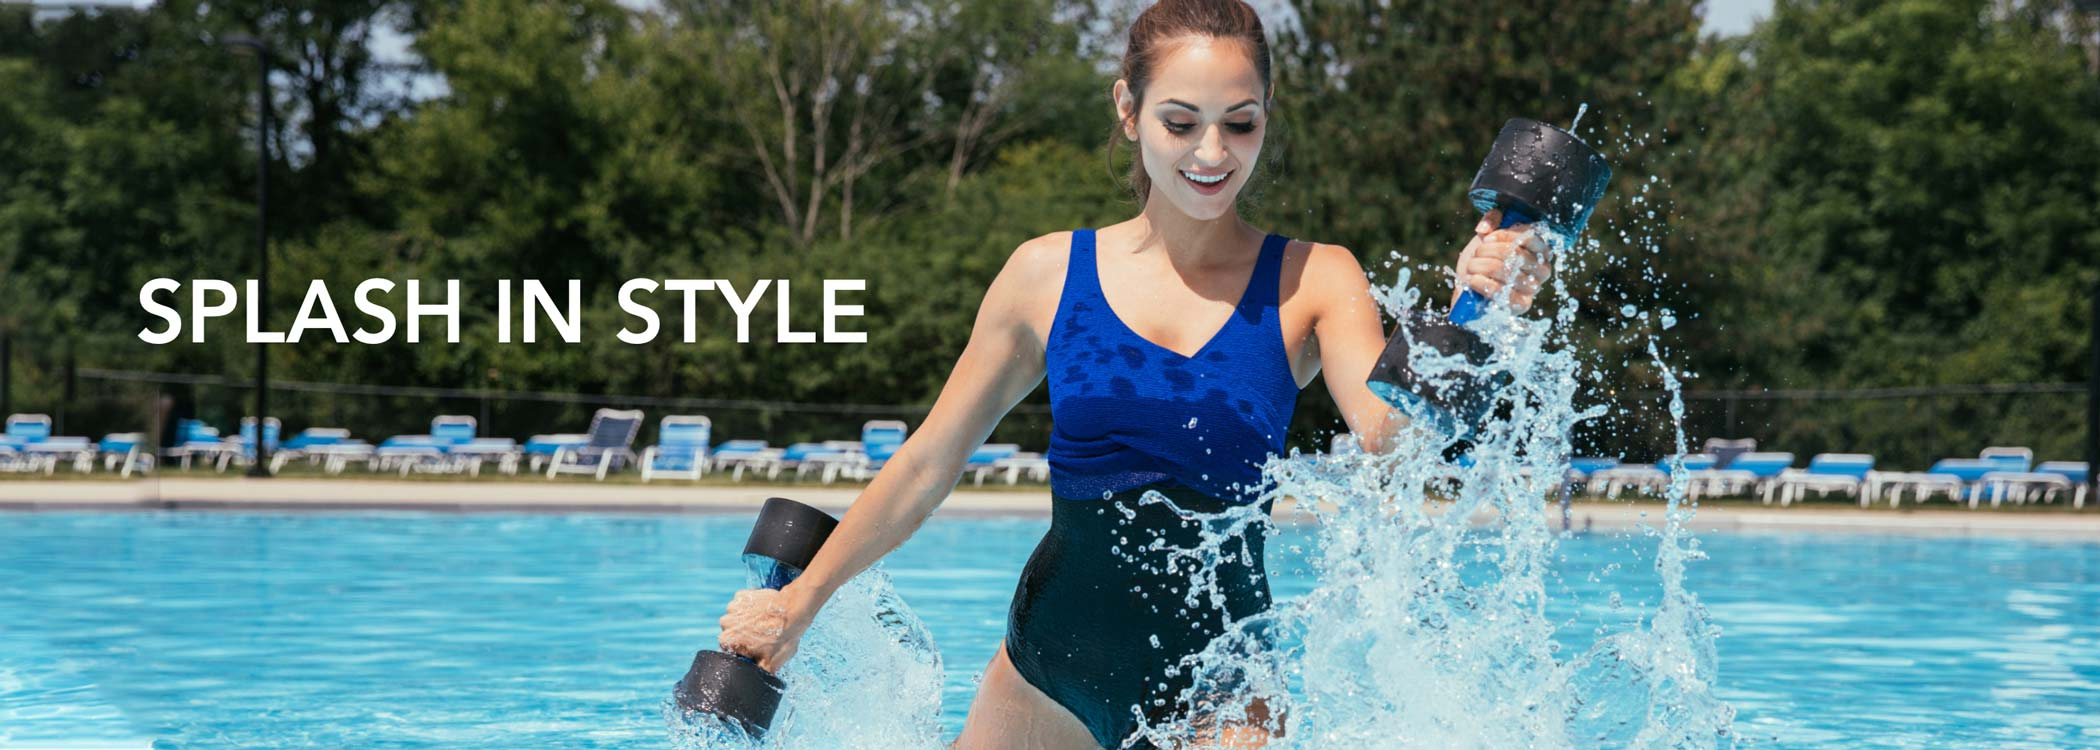 fcdef51697 SwimOutlet.com - The Web's Most Popular Swim Shop! Women's Swimwear, Men's  Swimwear, Swim Gear & More!